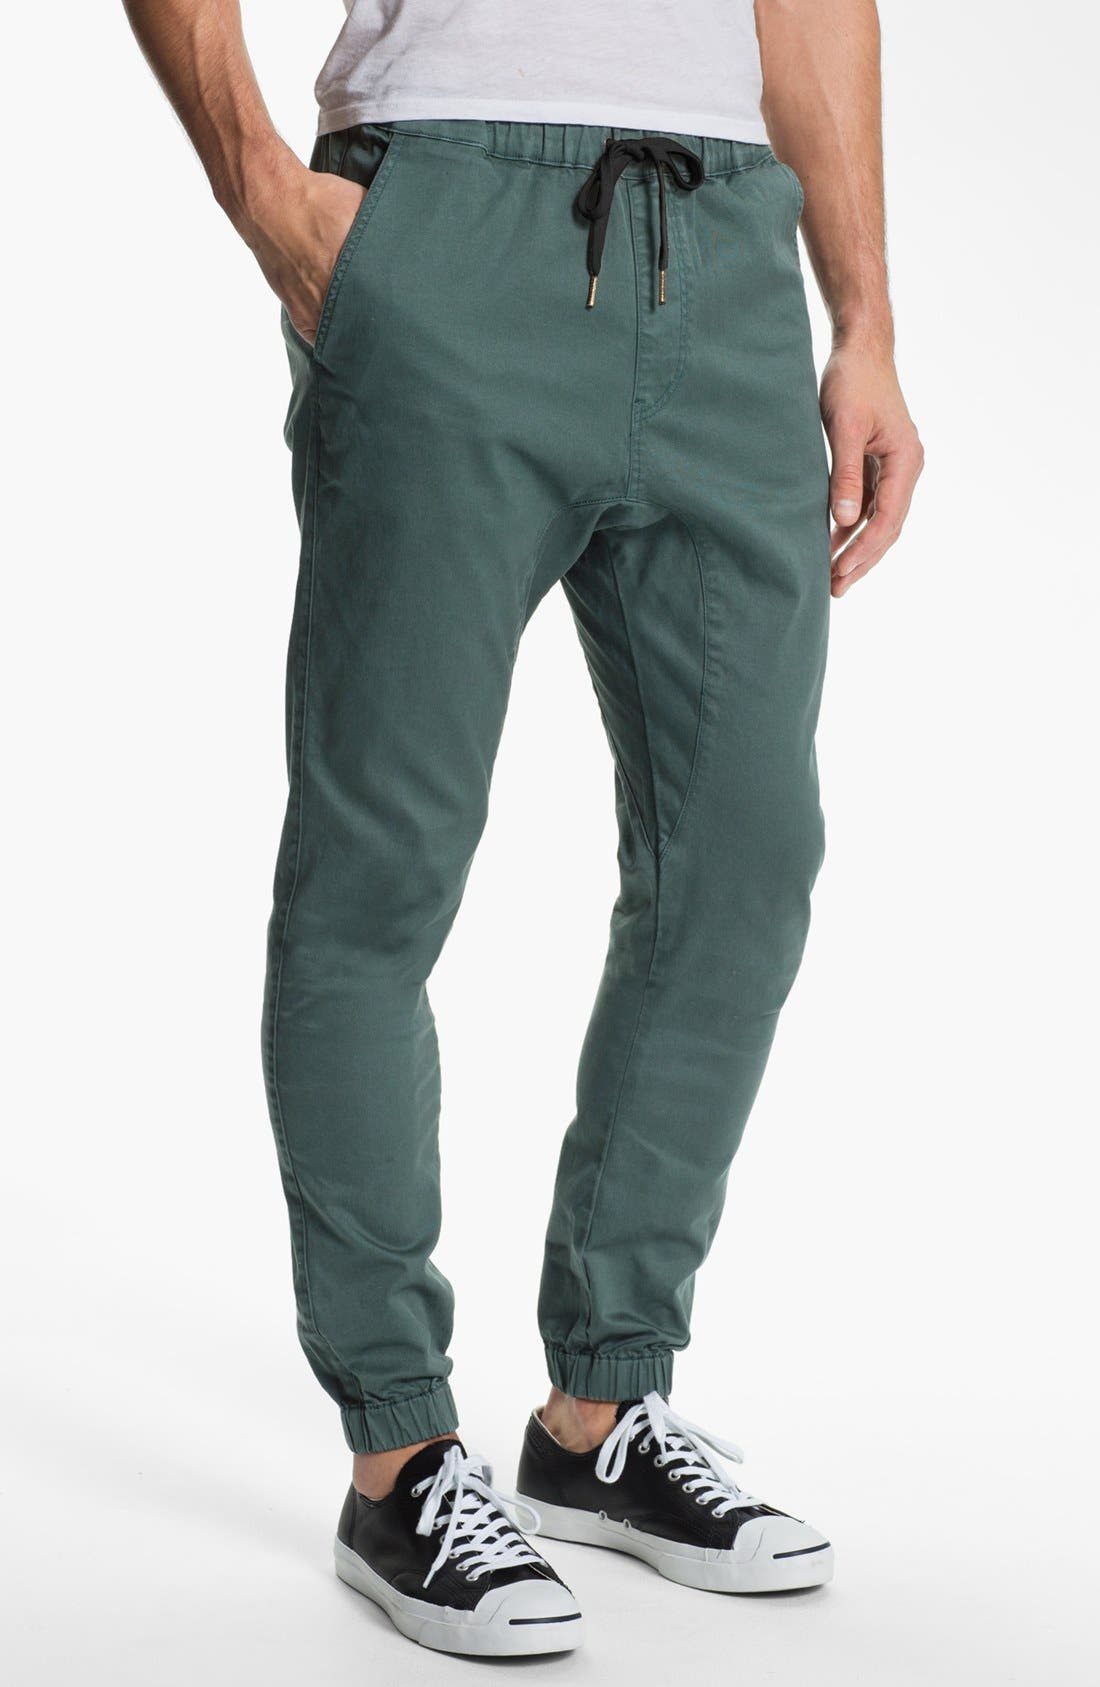 ZANEROBE, 'Sureshot' Slim Tapered Leg Jogger Pants, Main thumbnail 1, color, 460